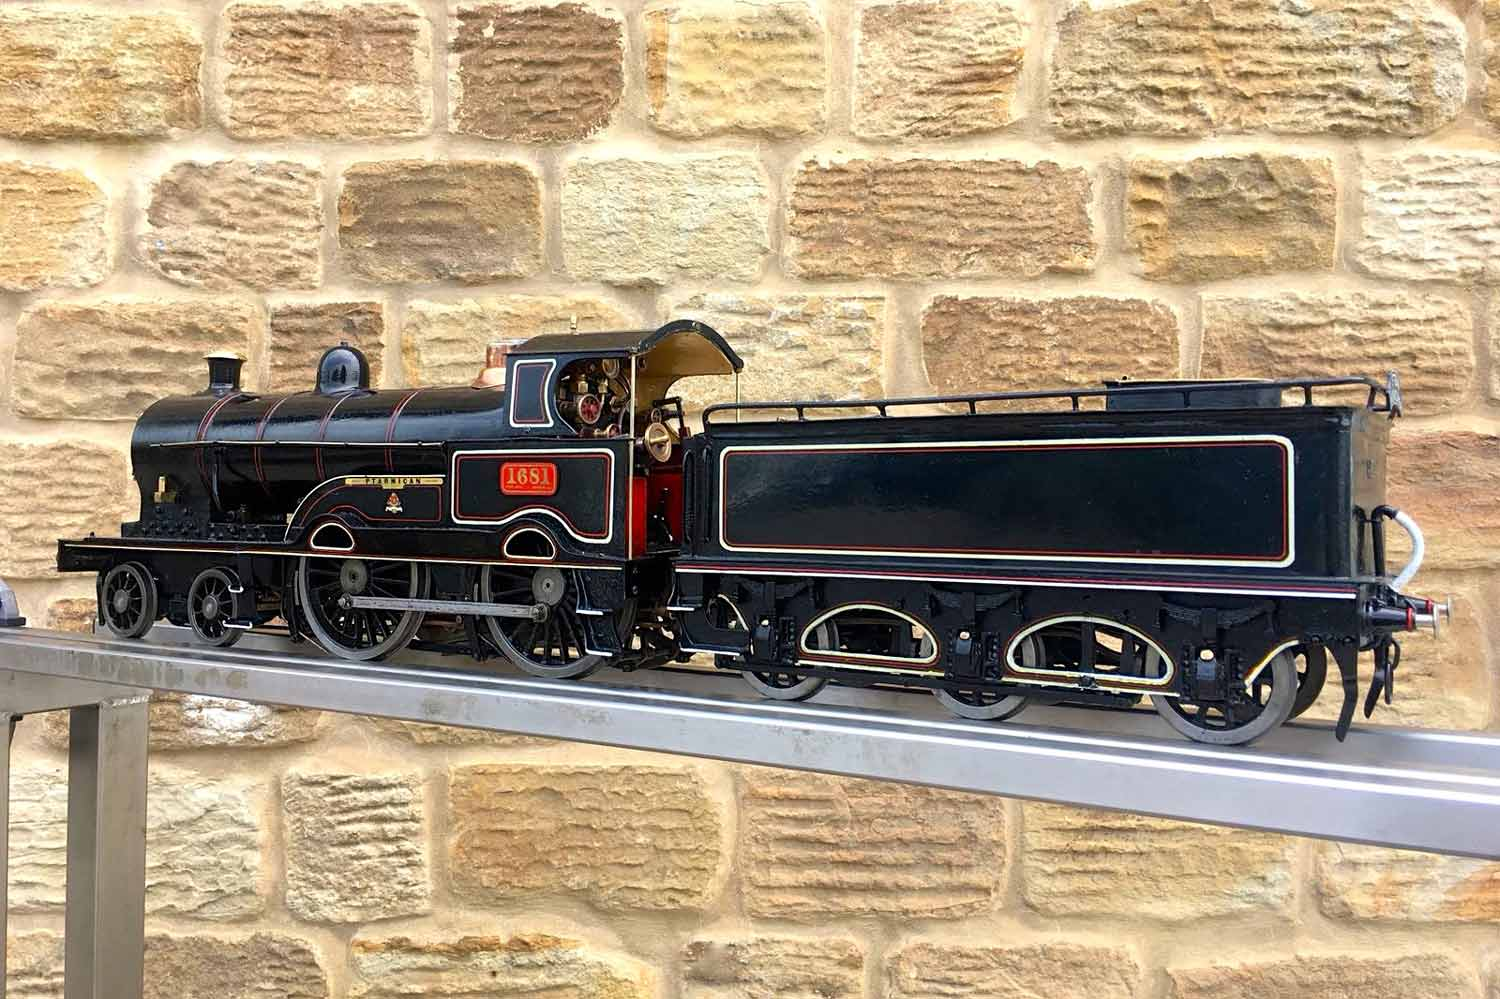 test 3-and-a-half-inch-LNWR-King-George-the-Fifth-live-steam-locomotive-for-sale-10